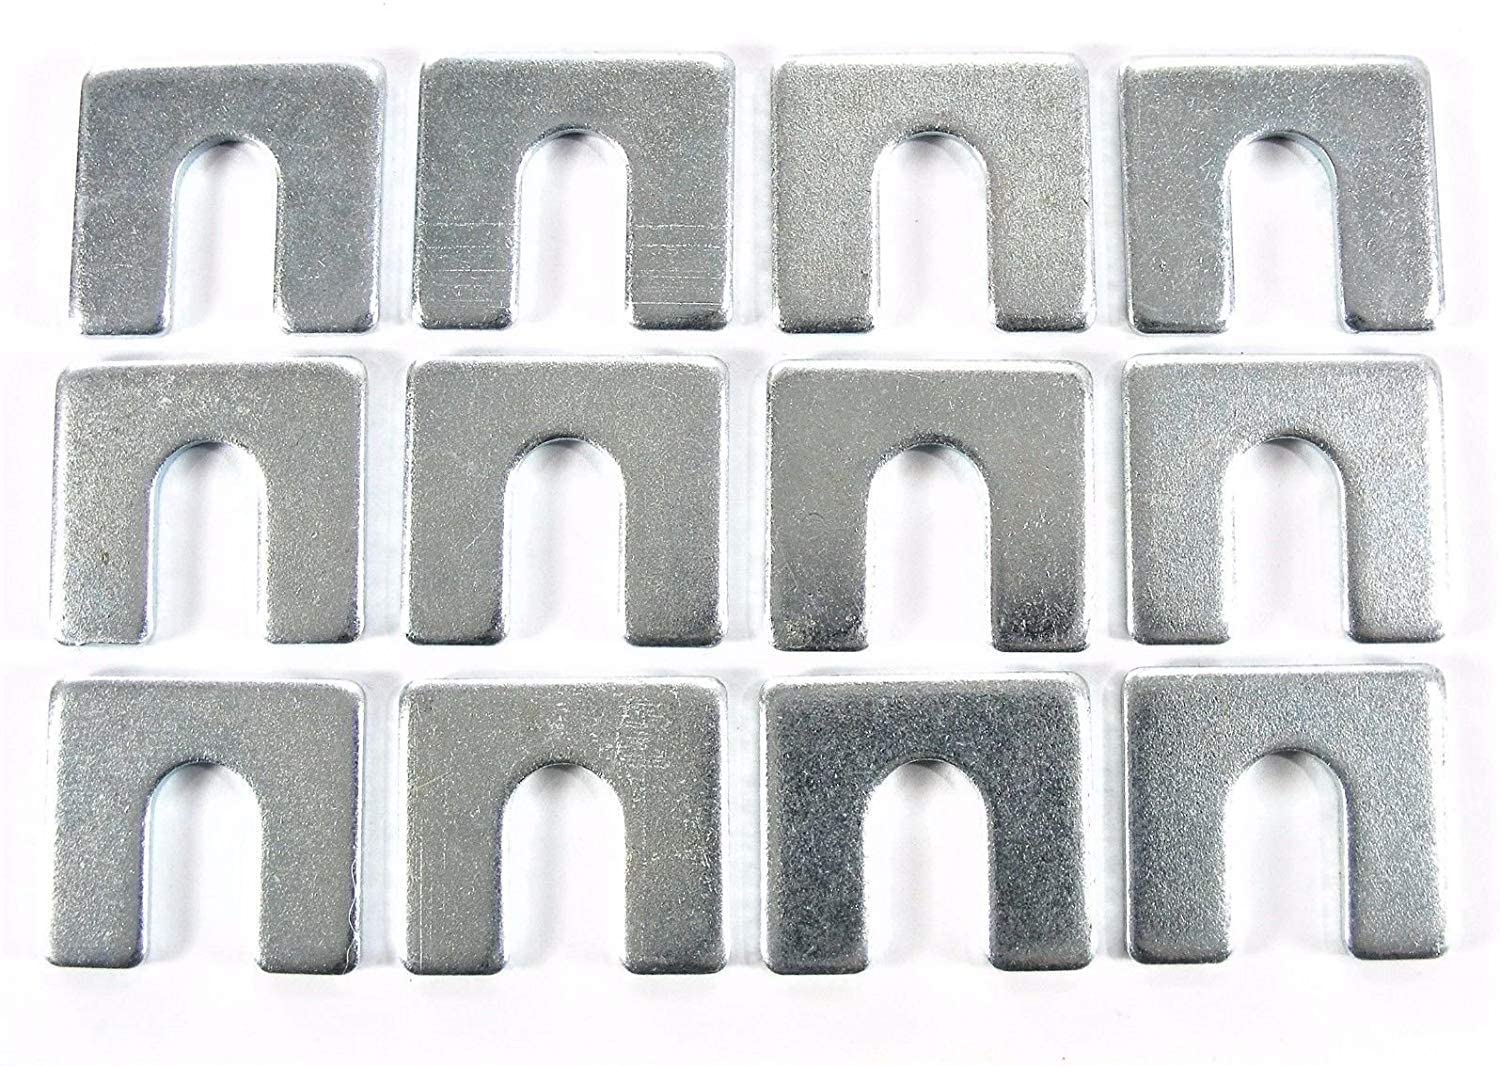 Online Auto Supply for GM Truck Fender & Body Alignment Shims- 1/8